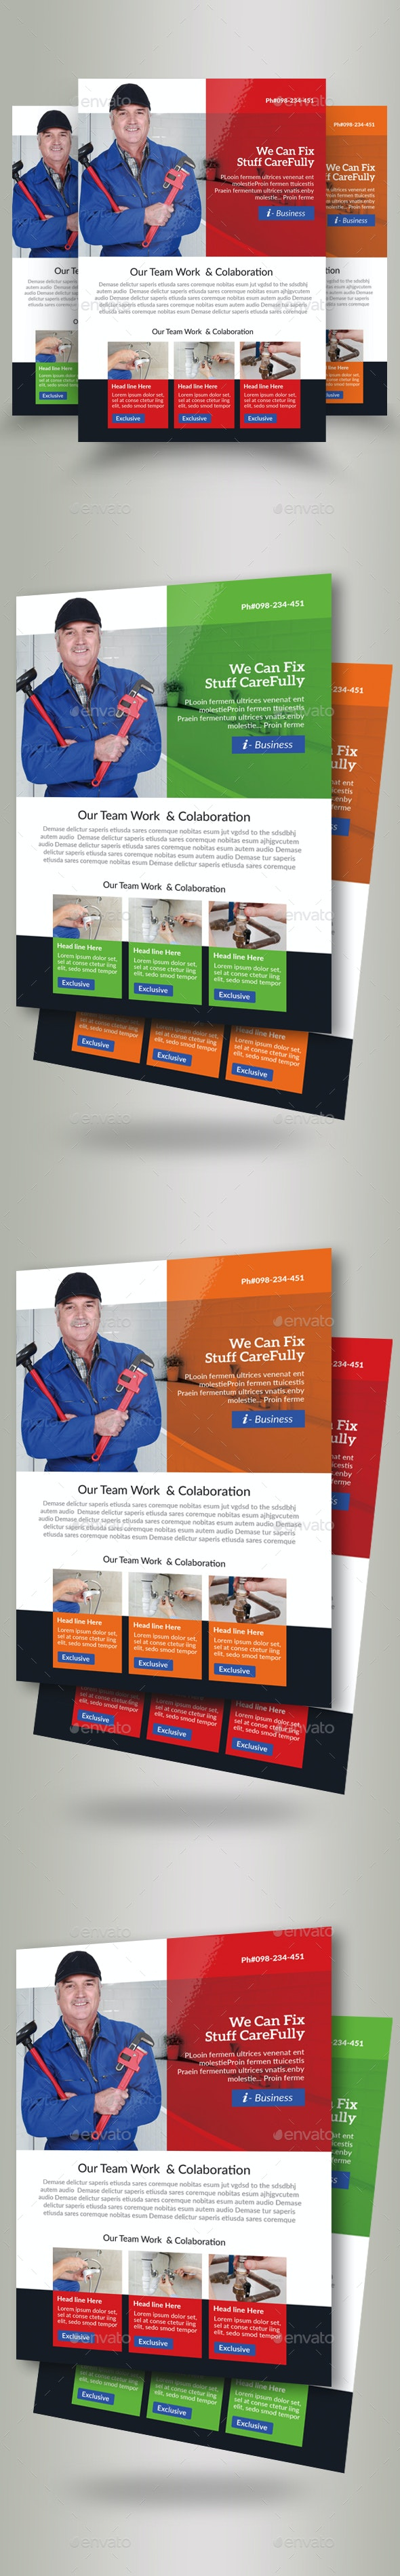 Handyman & Plumber Services Flyer - Corporate Flyers